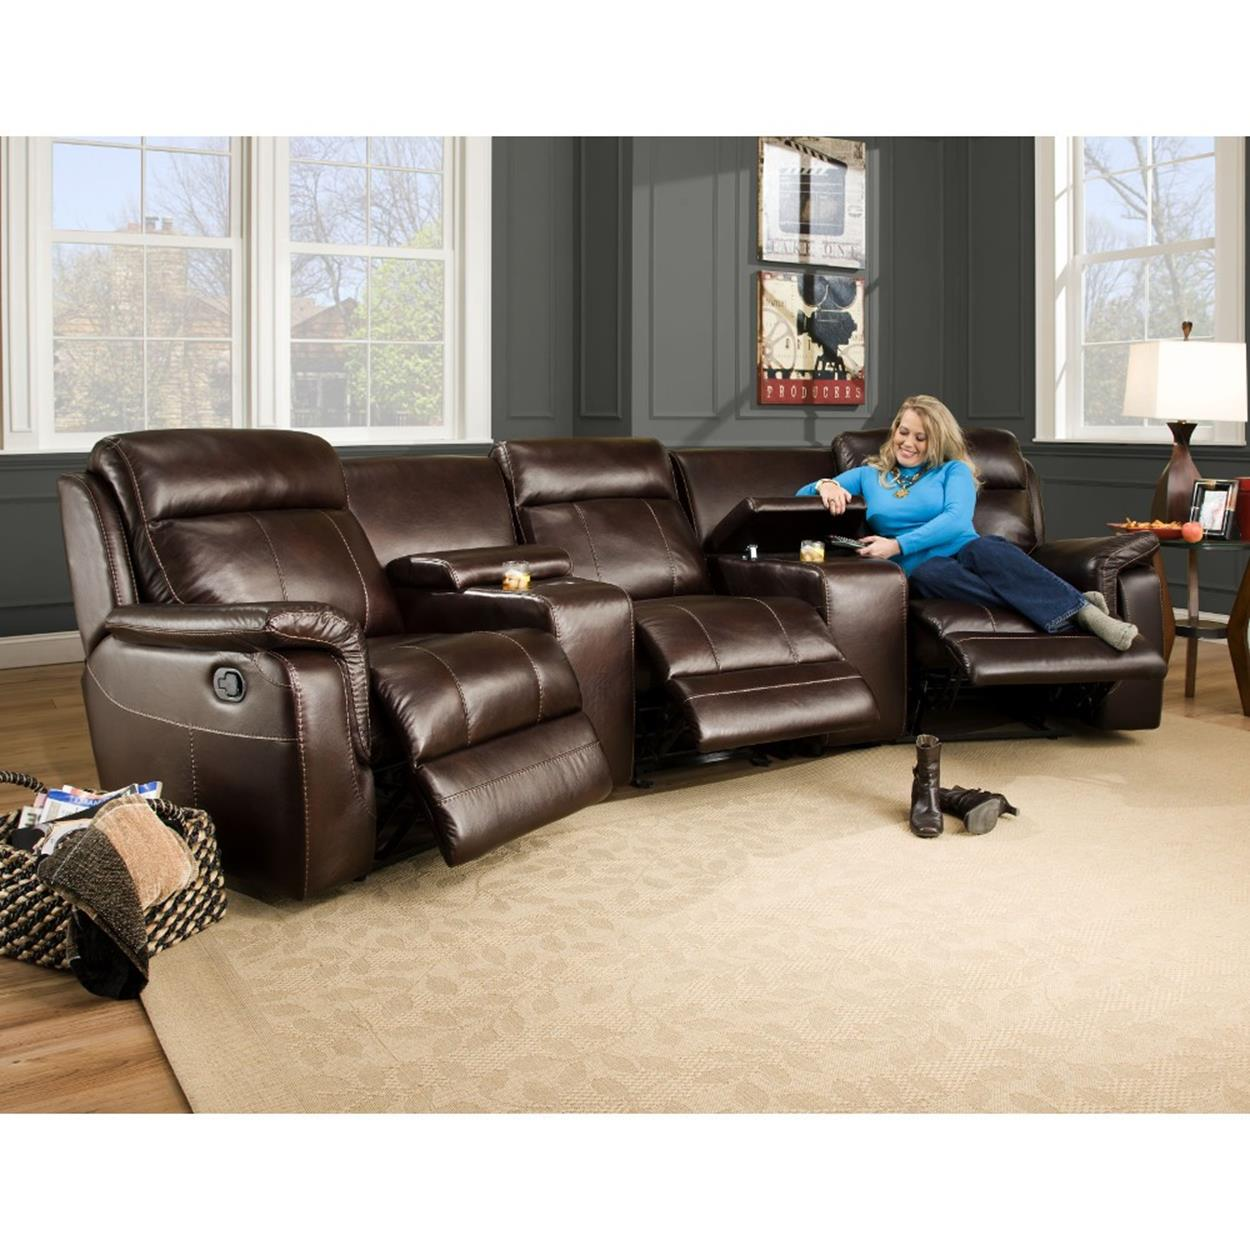 Living Room Theater Donation Request: Home Theater Couch Living Room Furniture 29